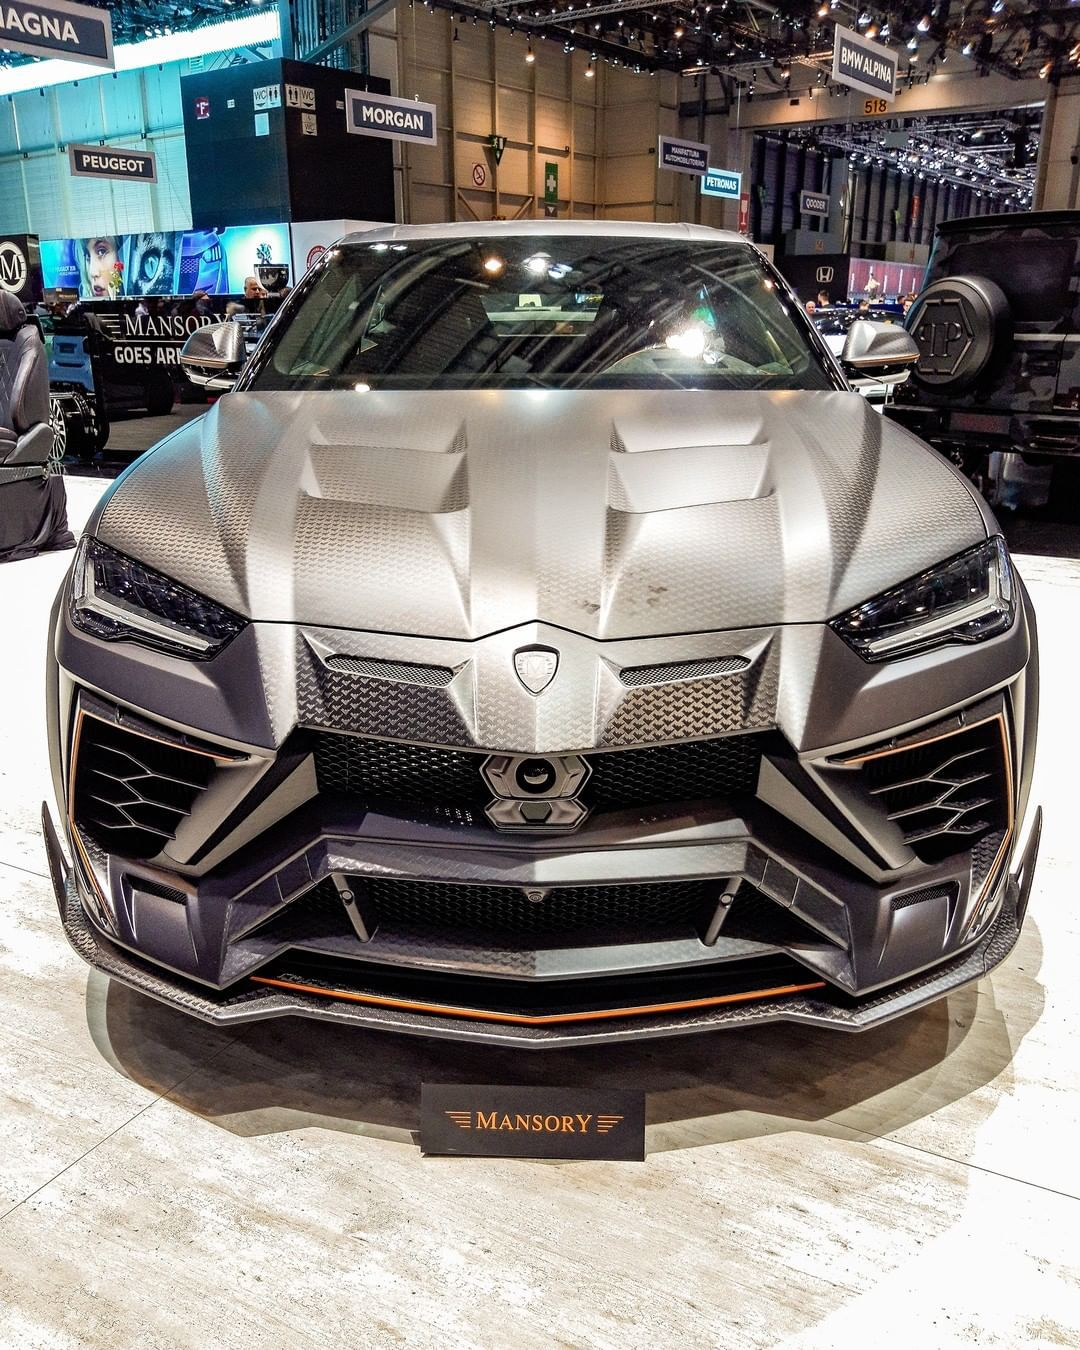 Mansory Venatus In 2020 Super Cars Super Sport Cars Super Luxury Cars